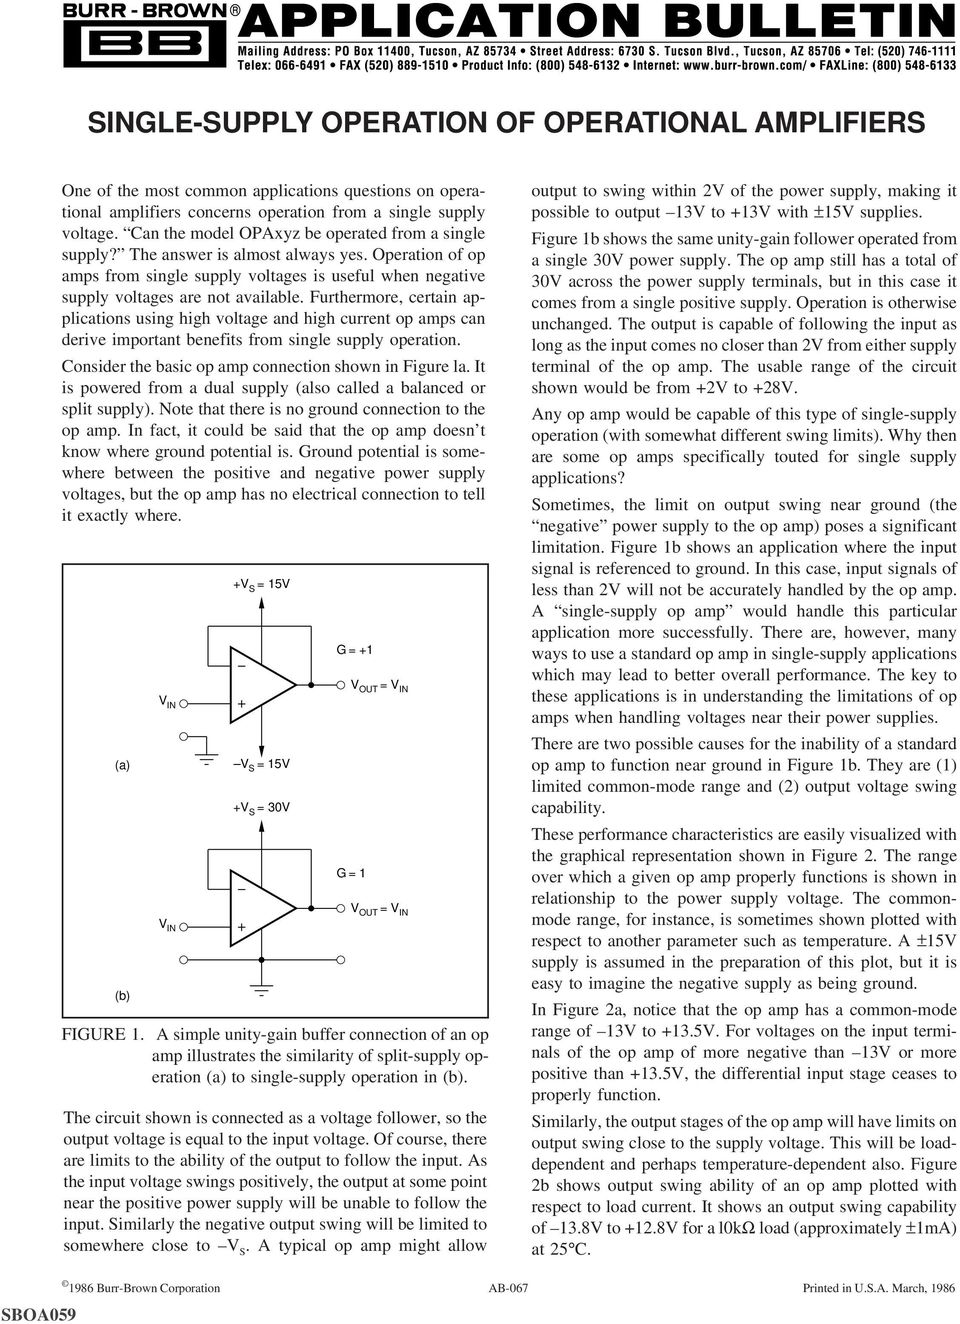 Single Supply Operation Of Operational Amplifiers Pdf Furthermore Certain Applications Using High Voltage And Current Op Amps Can Derive Important Benefits